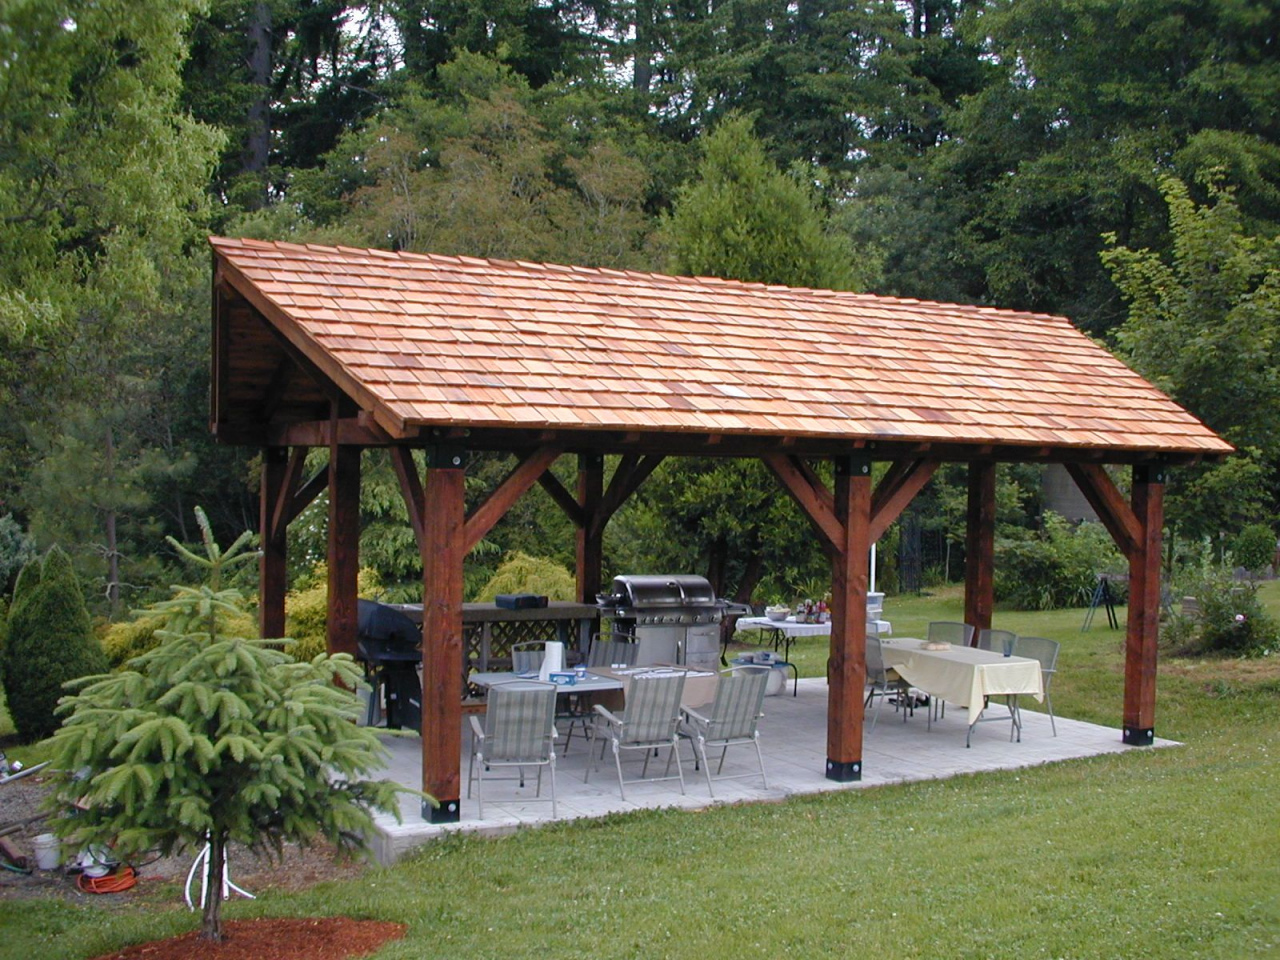 14 x 16 gazebo pergola with retractable roof pergolafrontporch pergolawithlights durch 14 x 16 gazebo